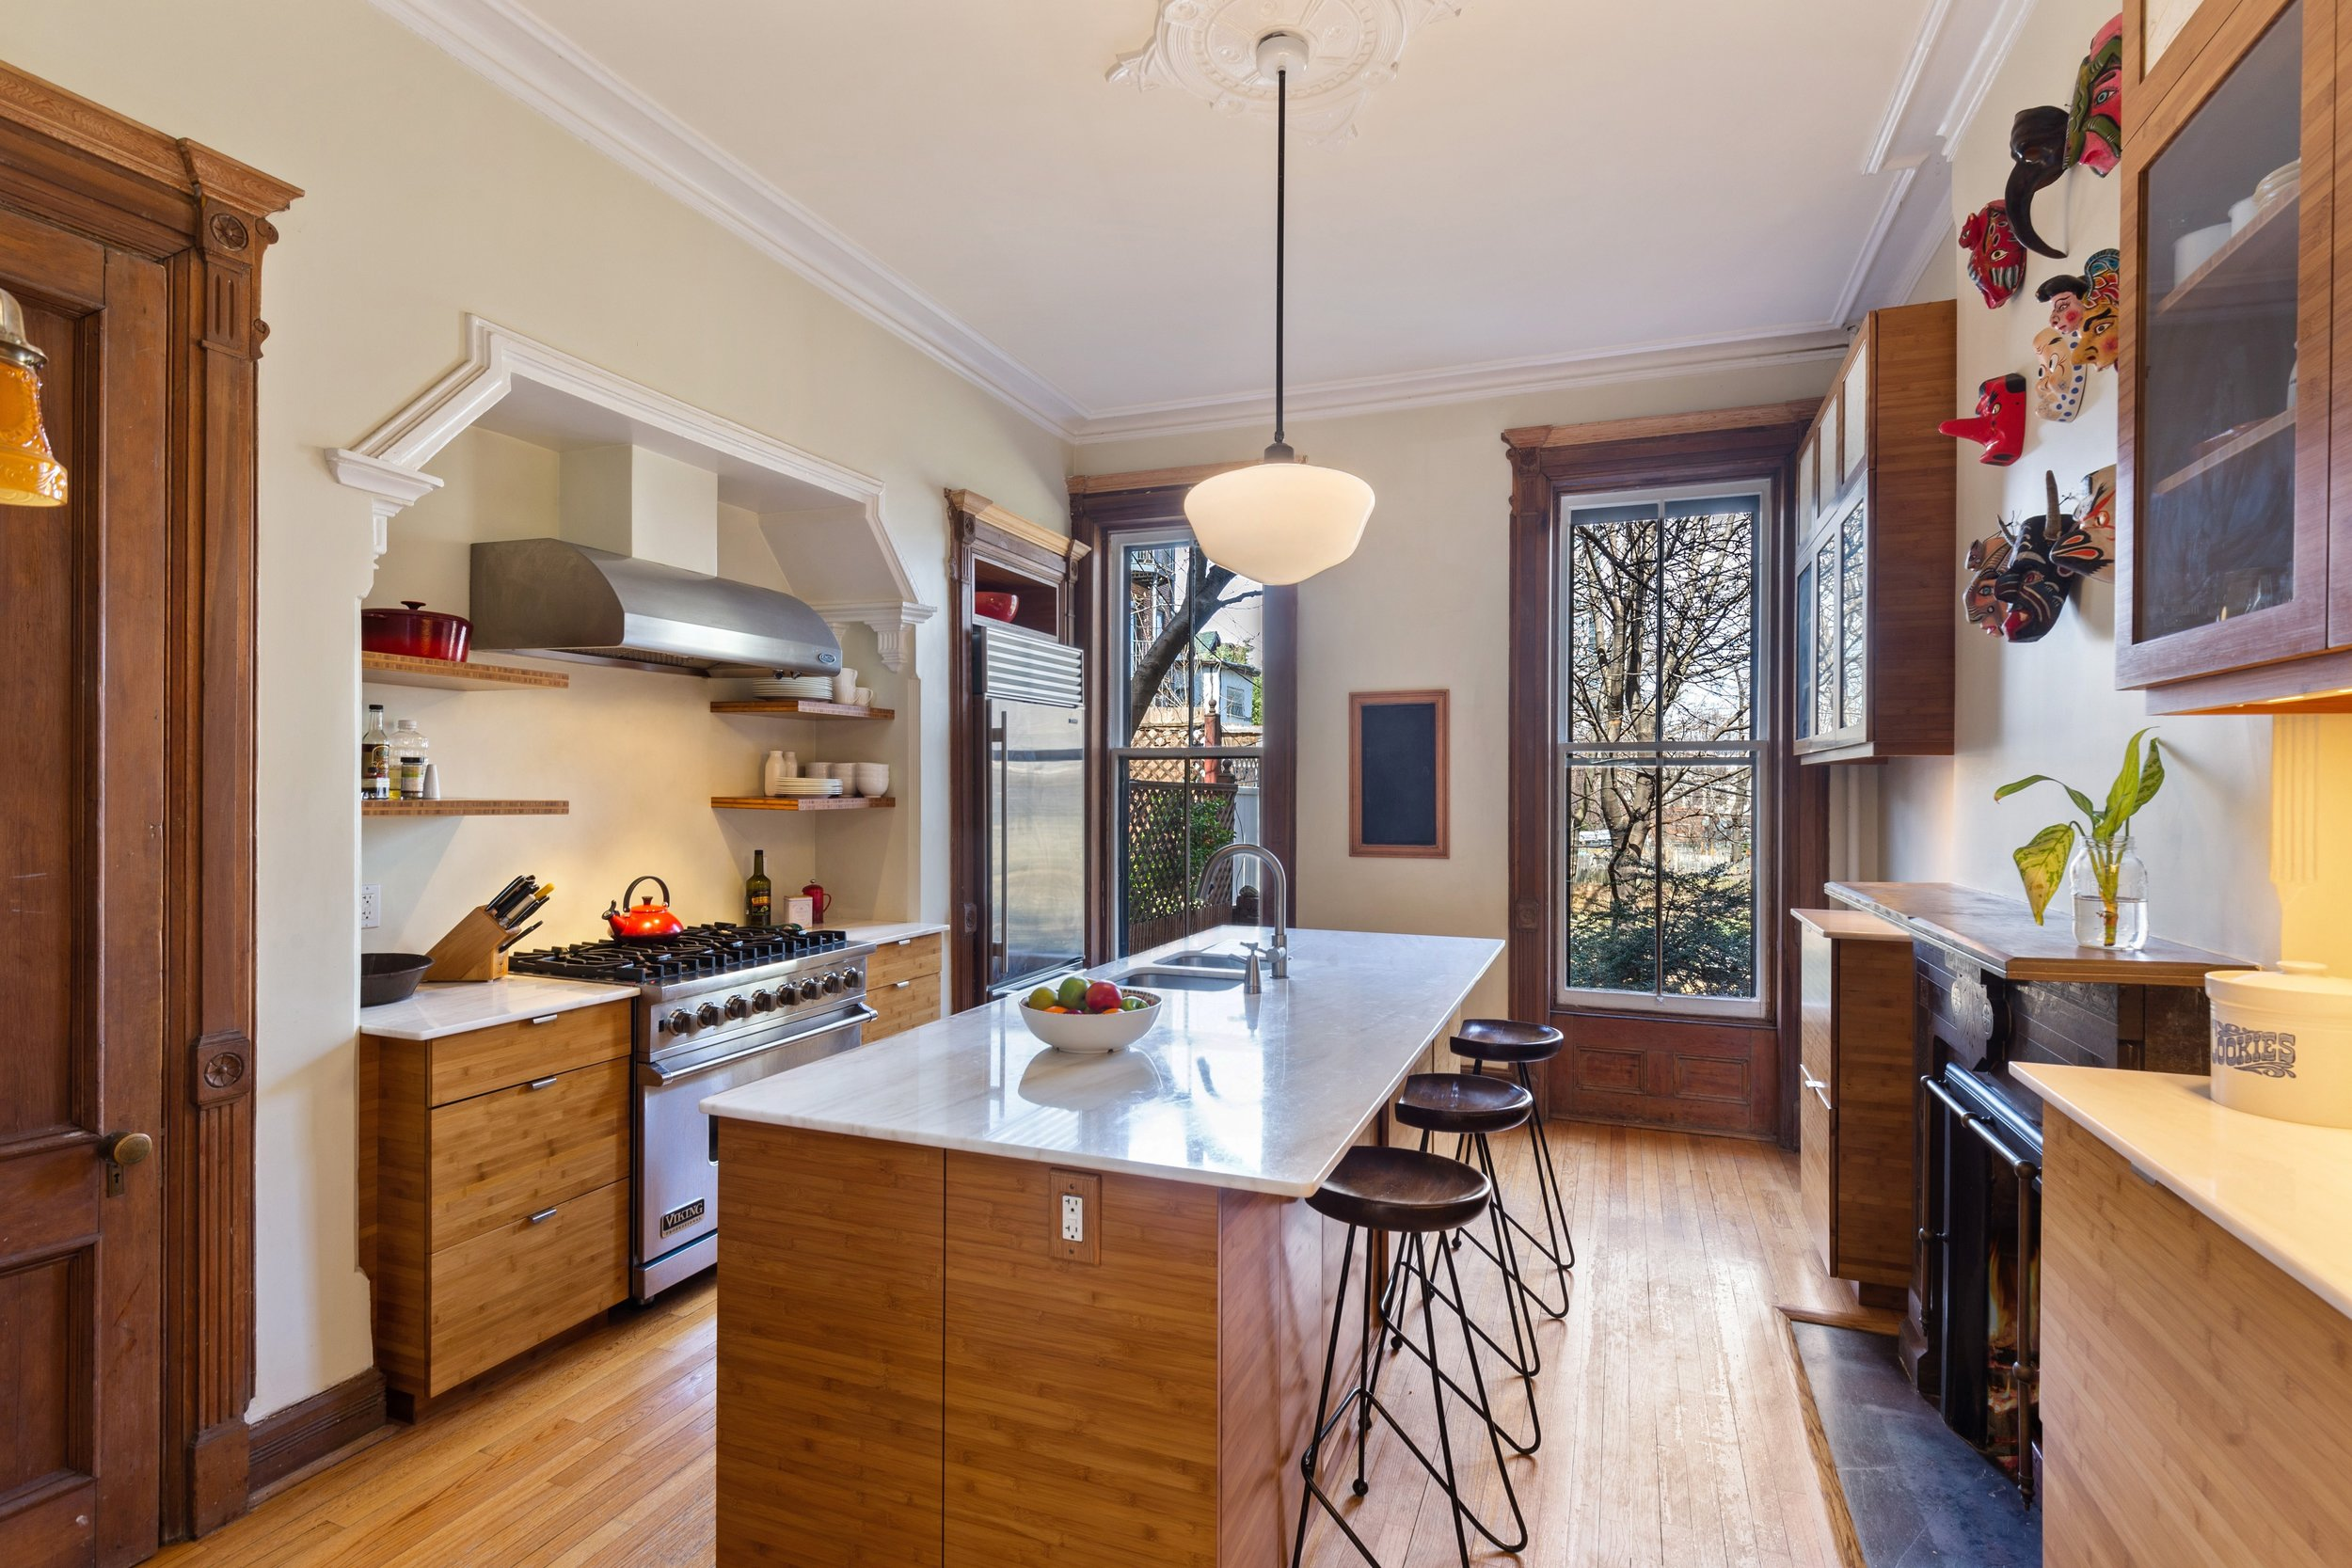 05_151WilloughbyAve_5_Kitchen_HiRes.jpg